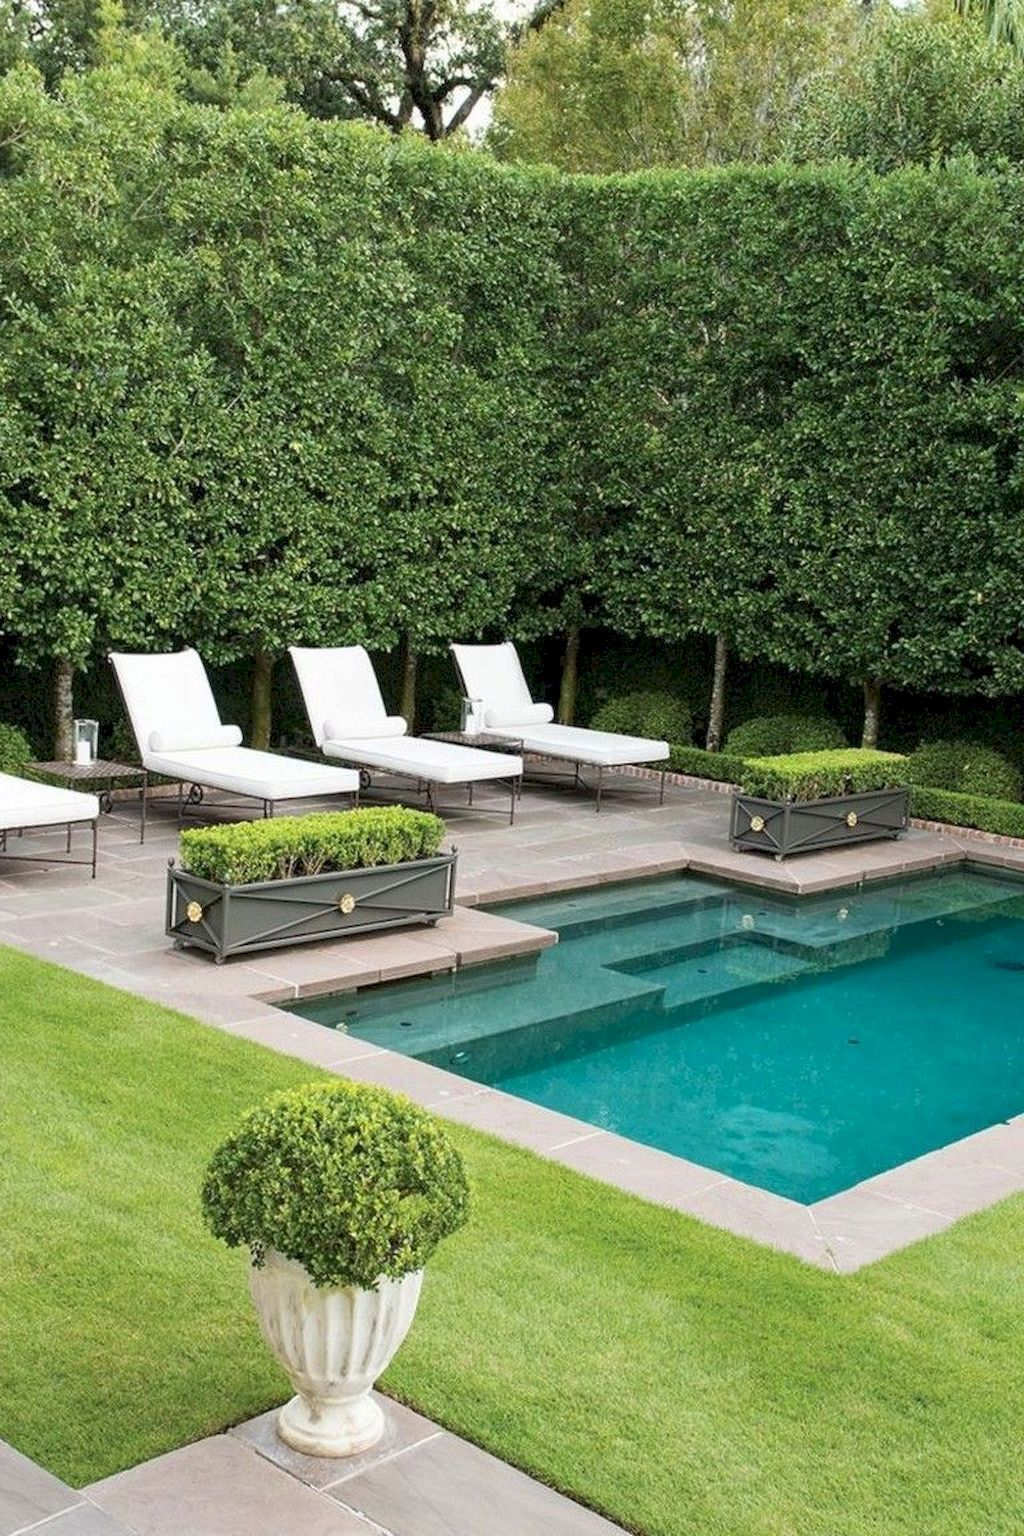 Amazing Small Swimming Pool Designs Ideas For Backyard To Revitalize Your Eyes Pool Swimm Small Backyard Design Backyard Pool Designs Swimming Pools Backyard